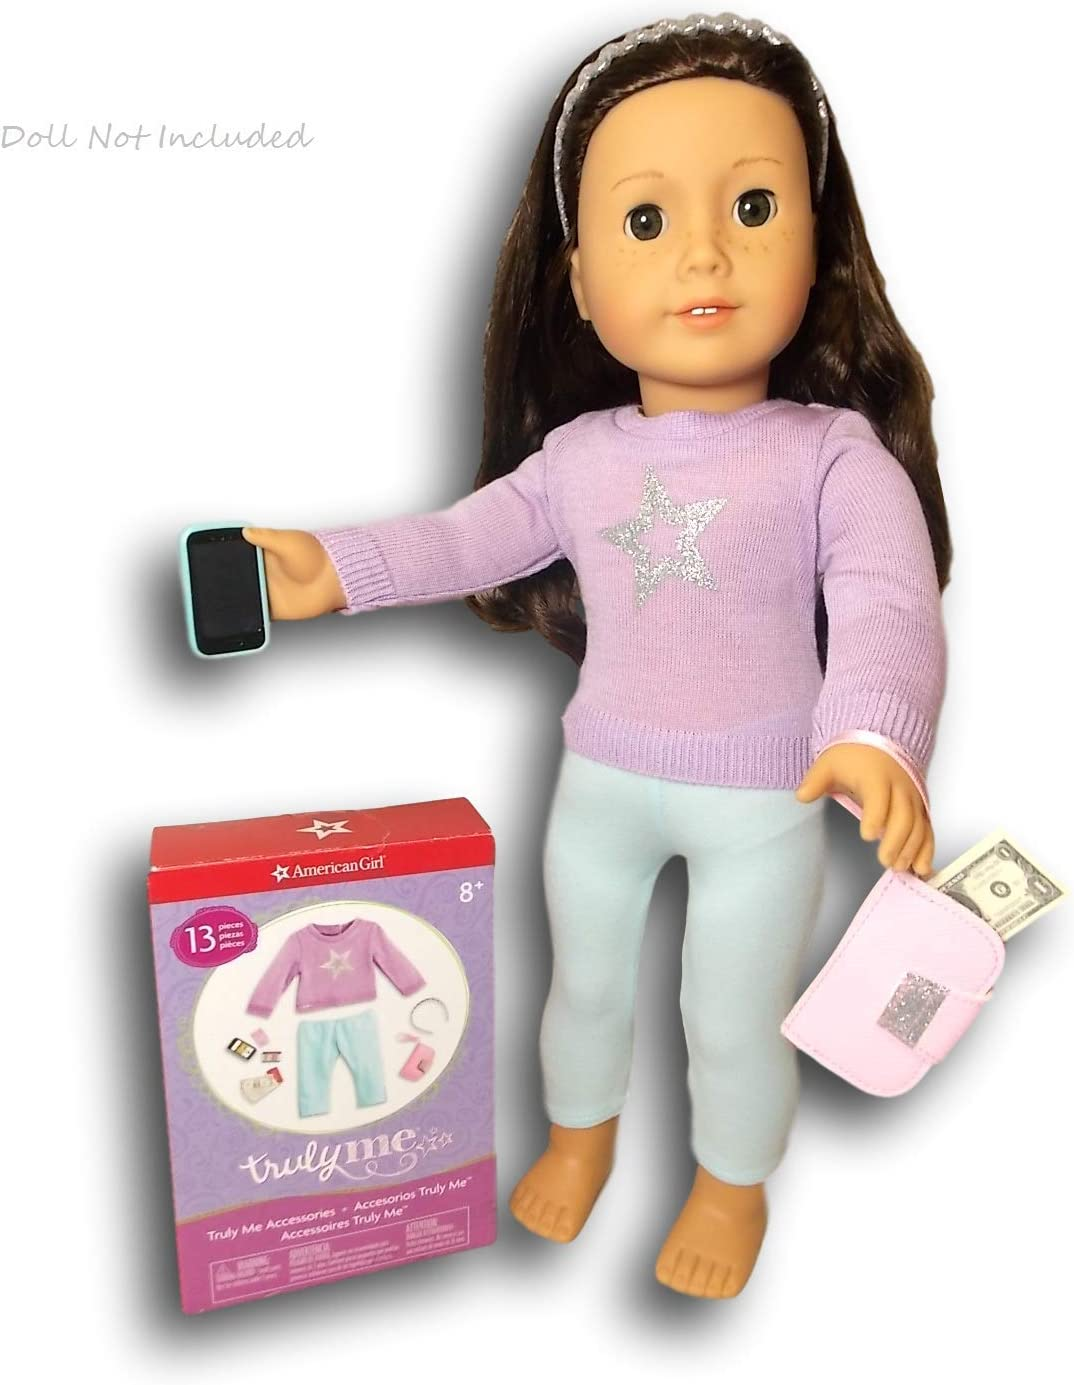 American Girl - Truly Me Accessories for Dolls - Truly Me 2017